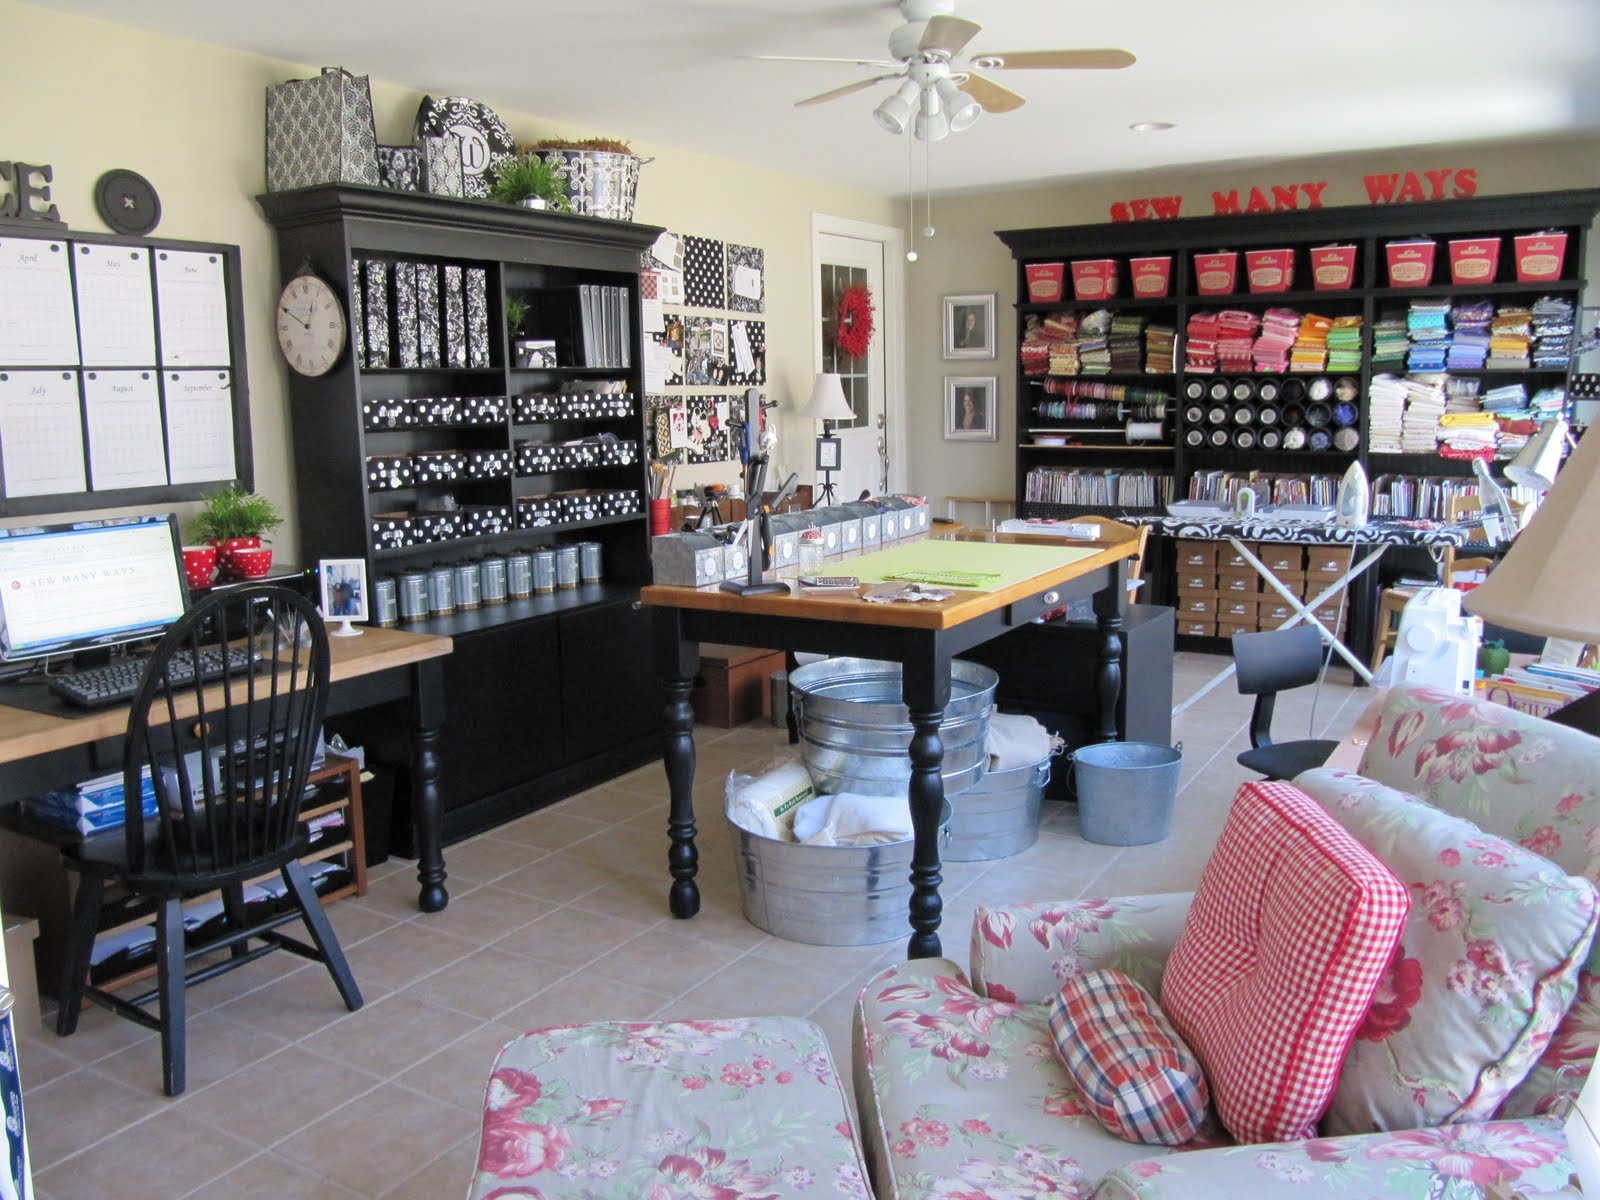 Amazing Organizing Ideas In This Amazing Craft Room Sew Many Ways